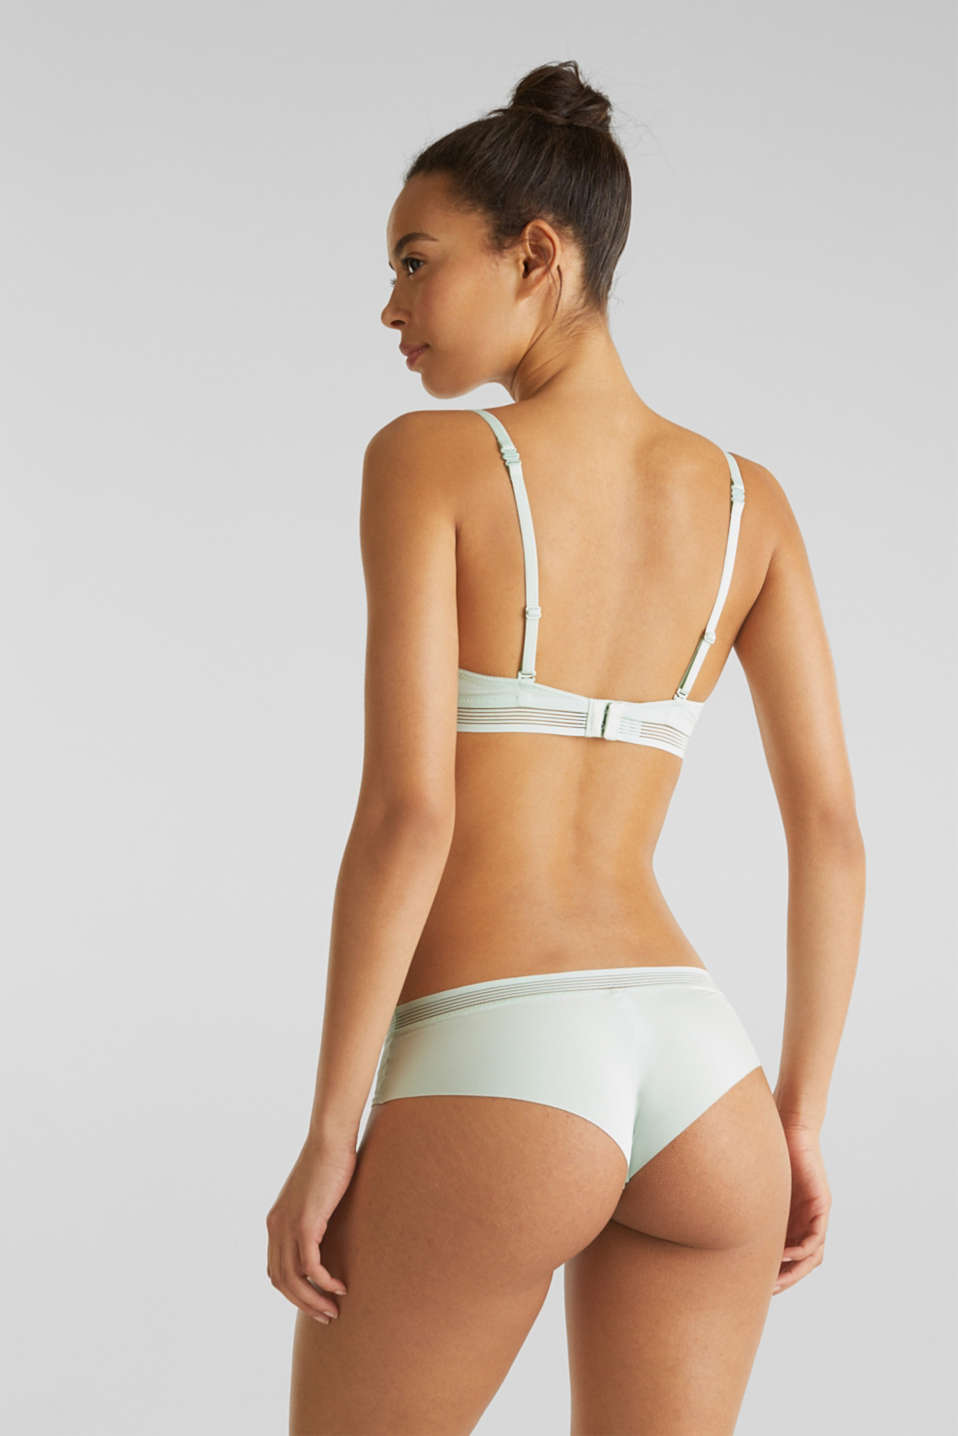 Padded push-up bra with sheer stripes, LIGHT AQUA GREEN, detail image number 1